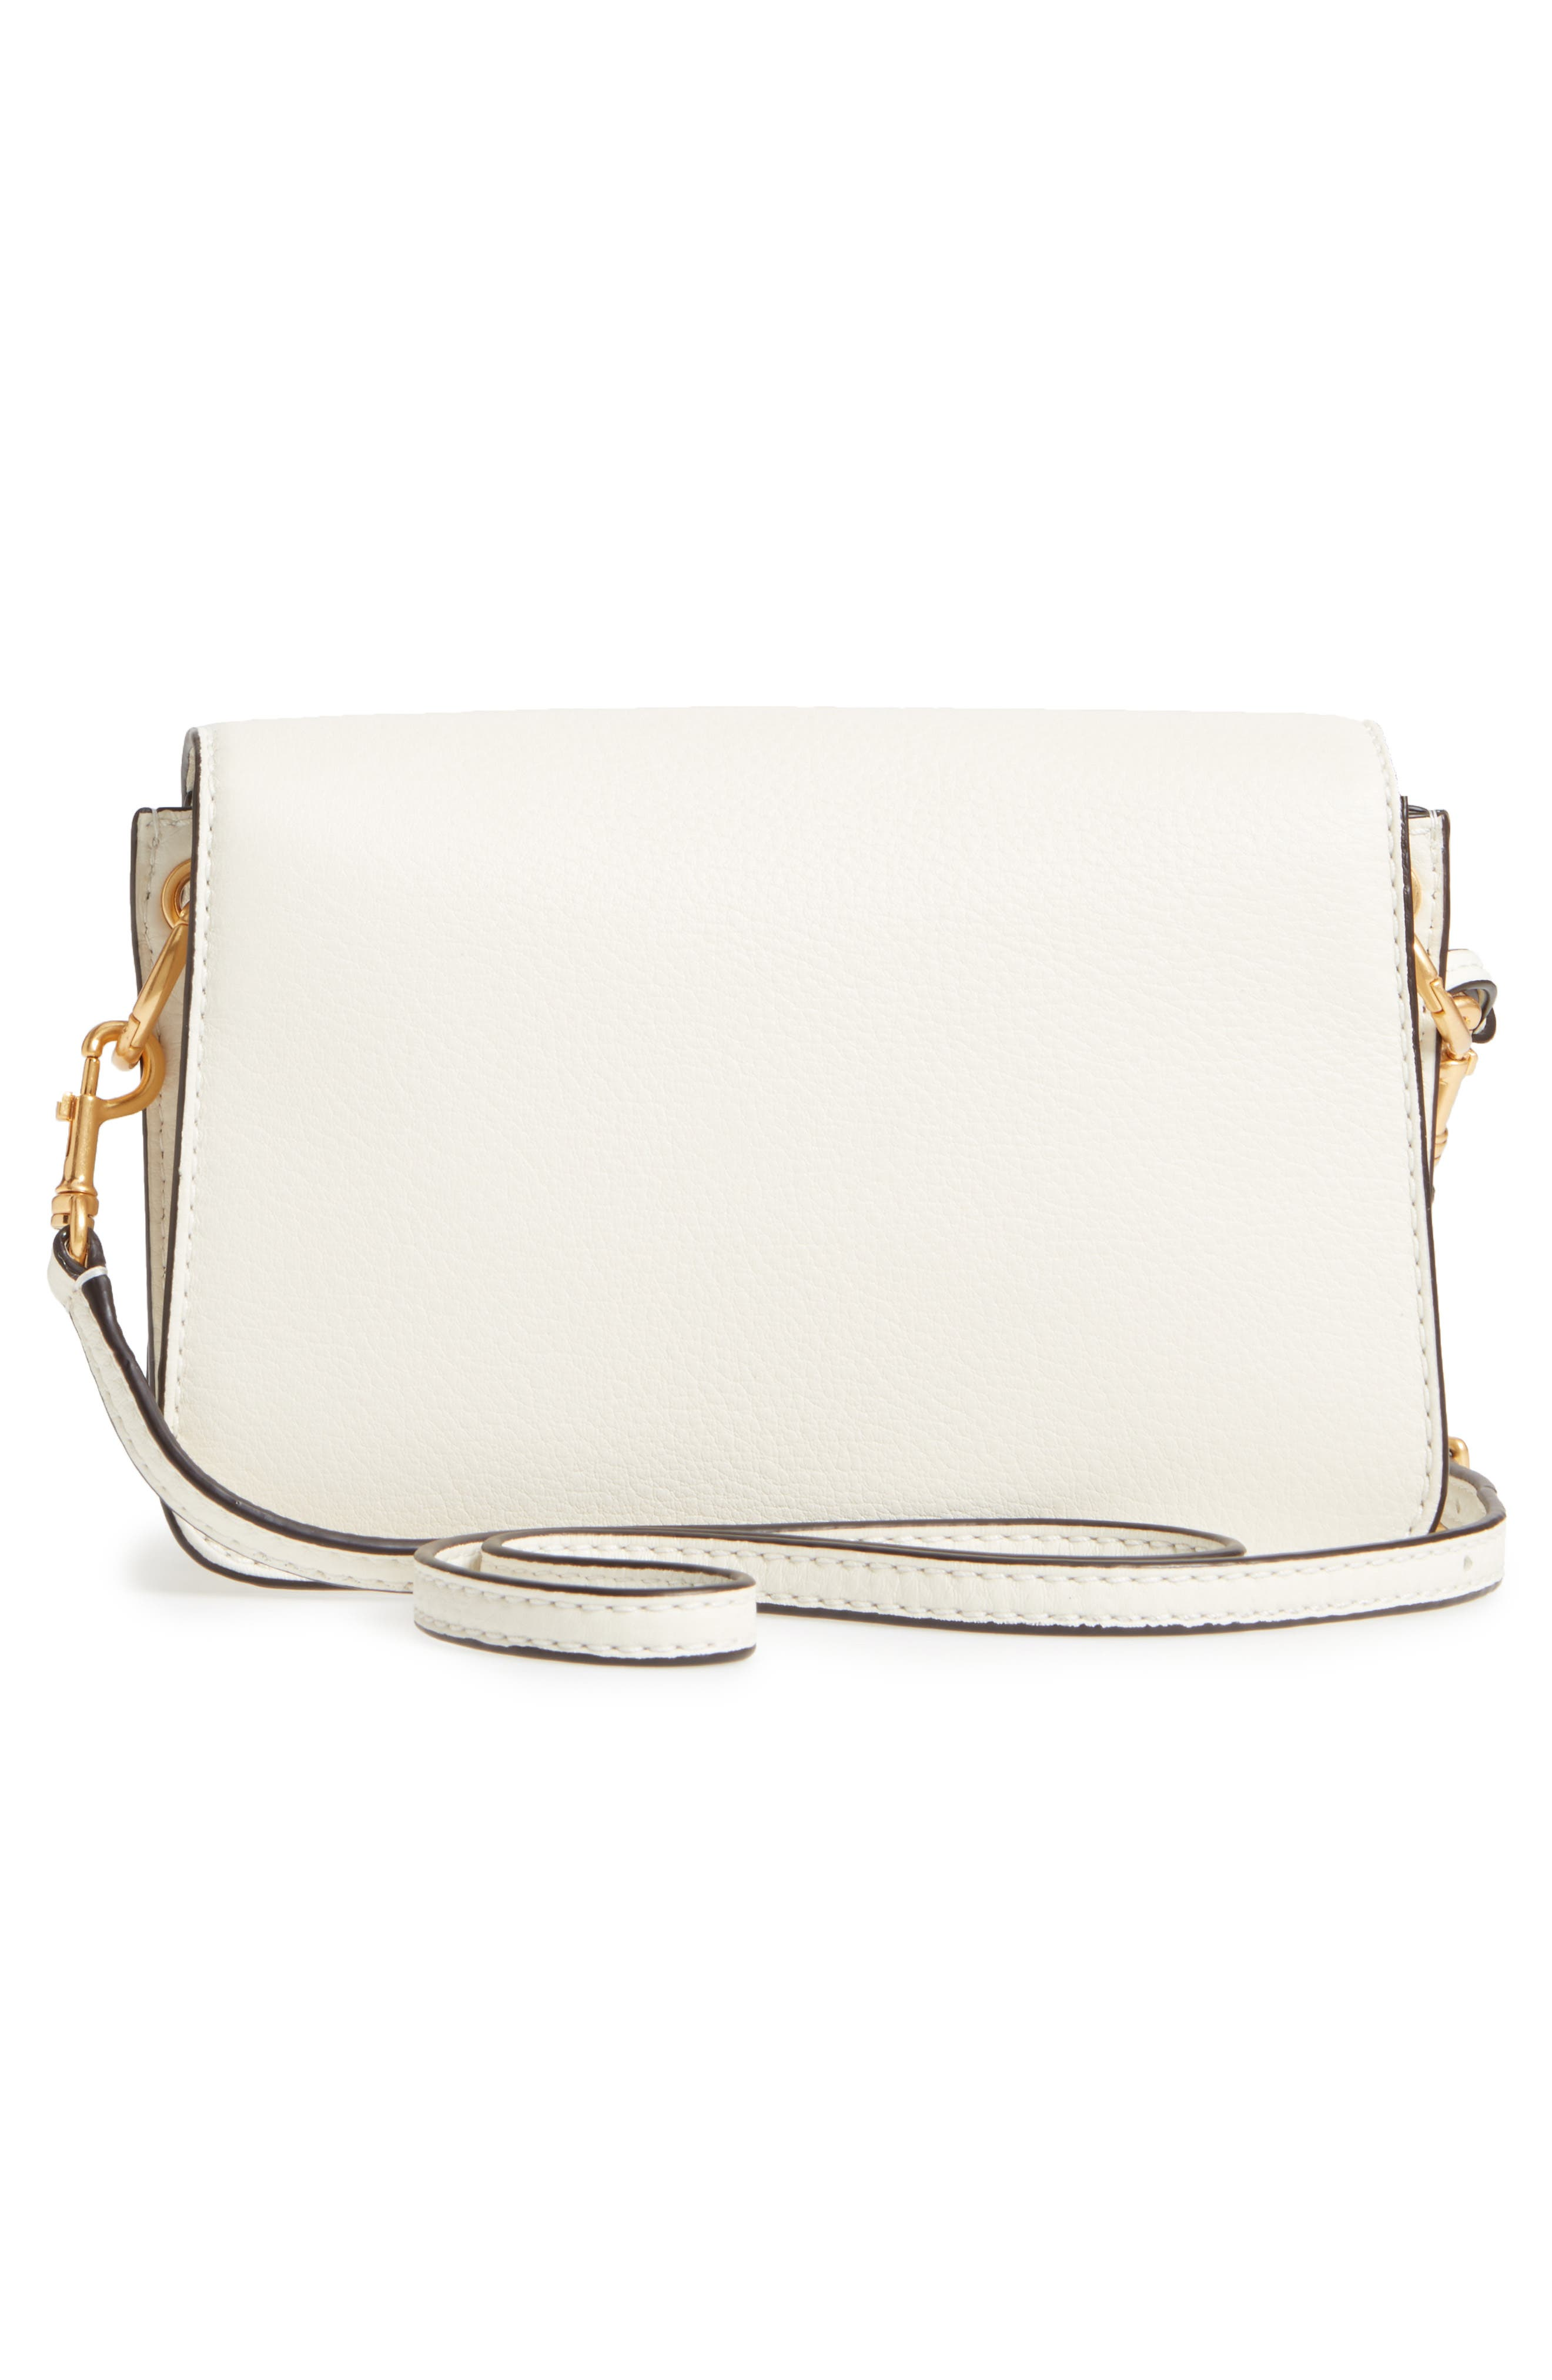 McGraw Whipstitch Leather Crossbody Bag,                             Alternate thumbnail 3, color,                             New Ivory